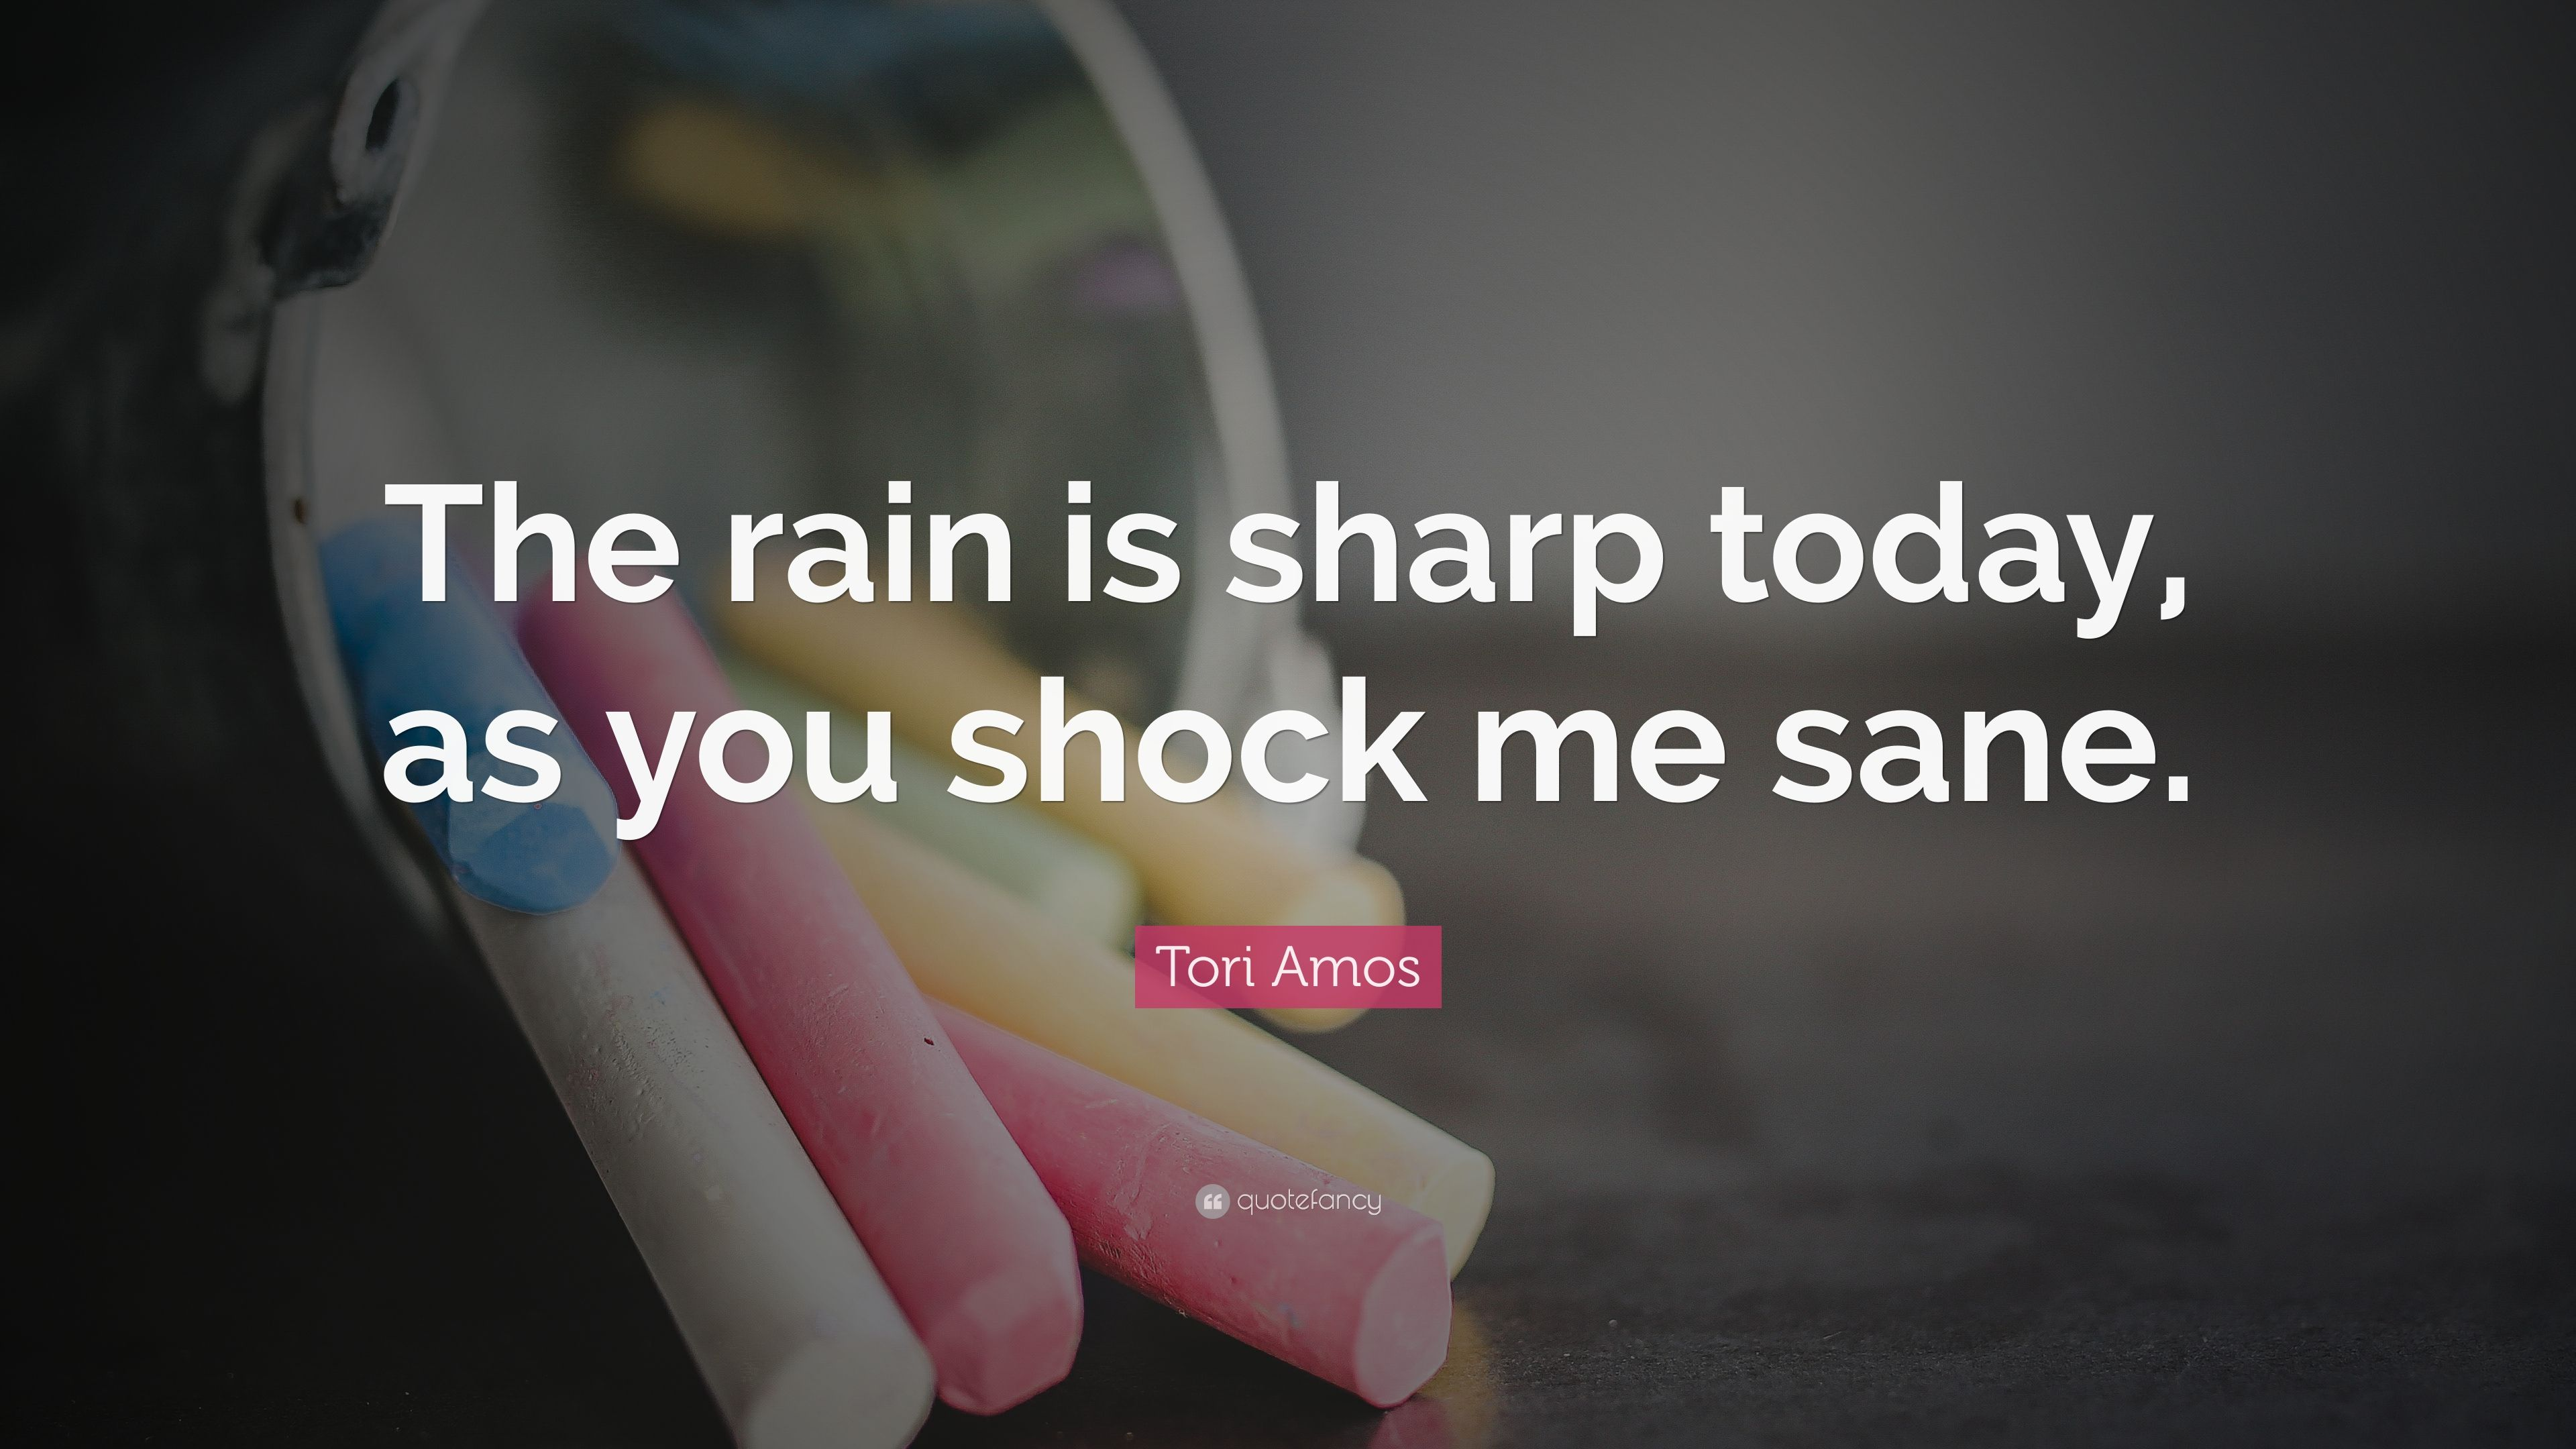 Tori Amos Quote: U201cThe Rain Is Sharp Today, As You Shock Me Sane